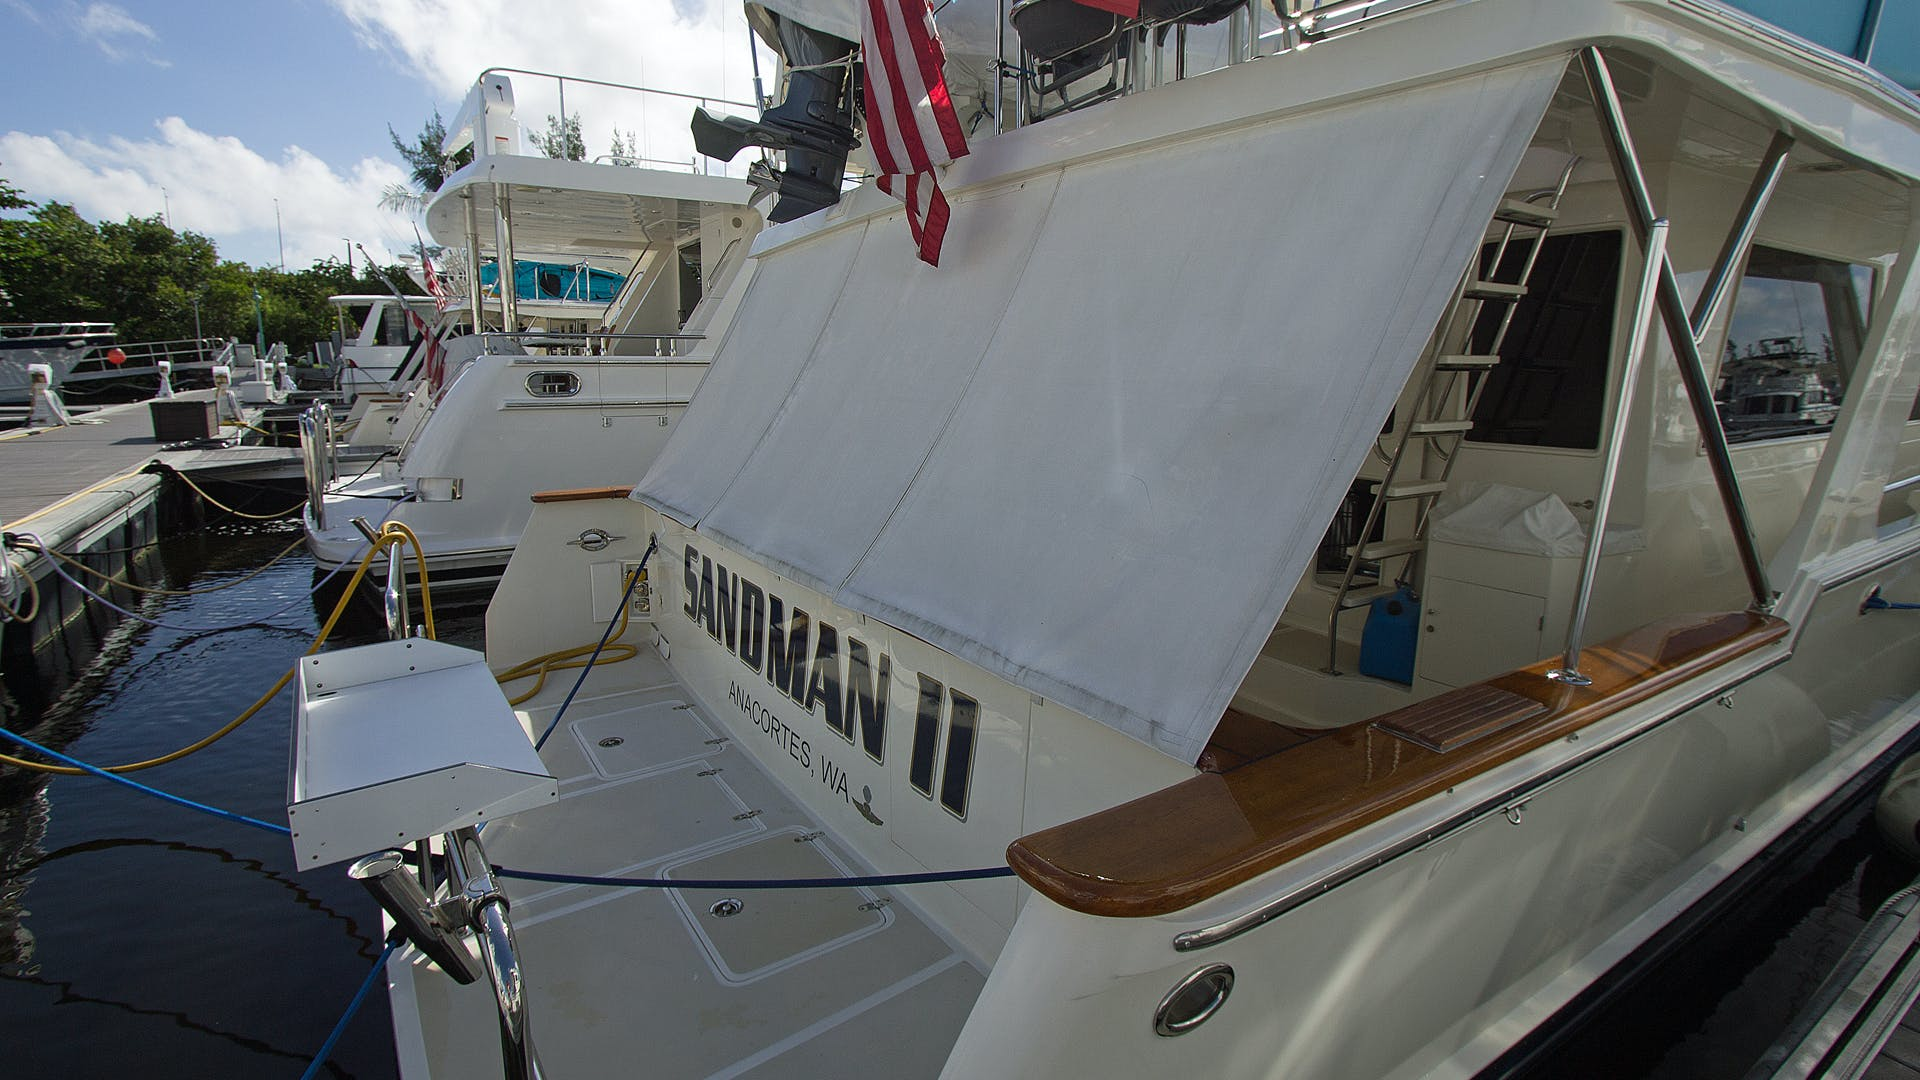 2001 Offshore Yachts 62' Pilothouse Sandman II   Picture 2 of 25